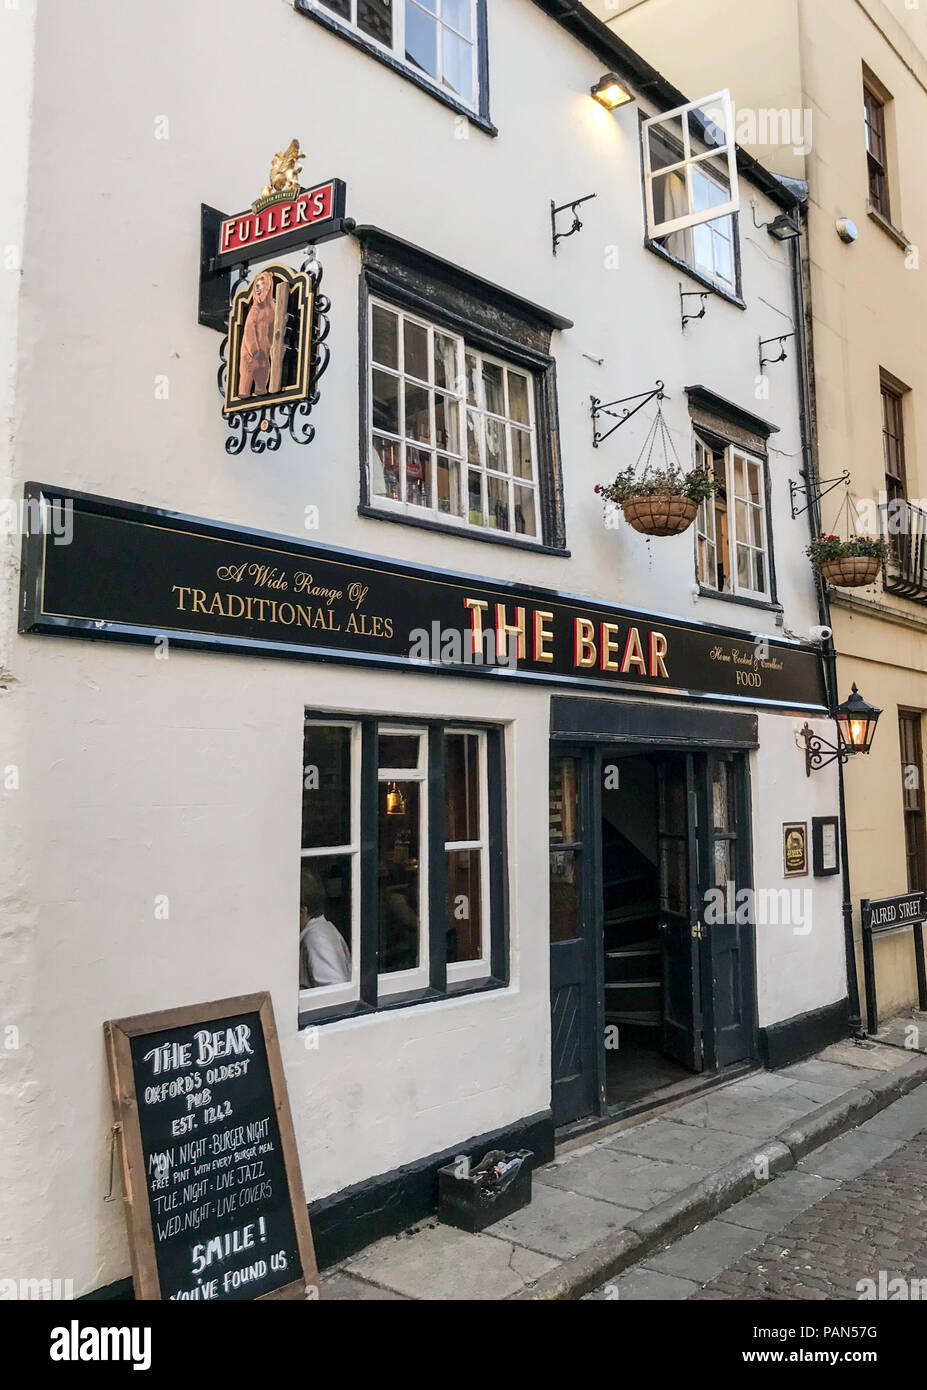 The Bear pub,Oxford, Oxfordshire, South East England, Uk - Stock Image